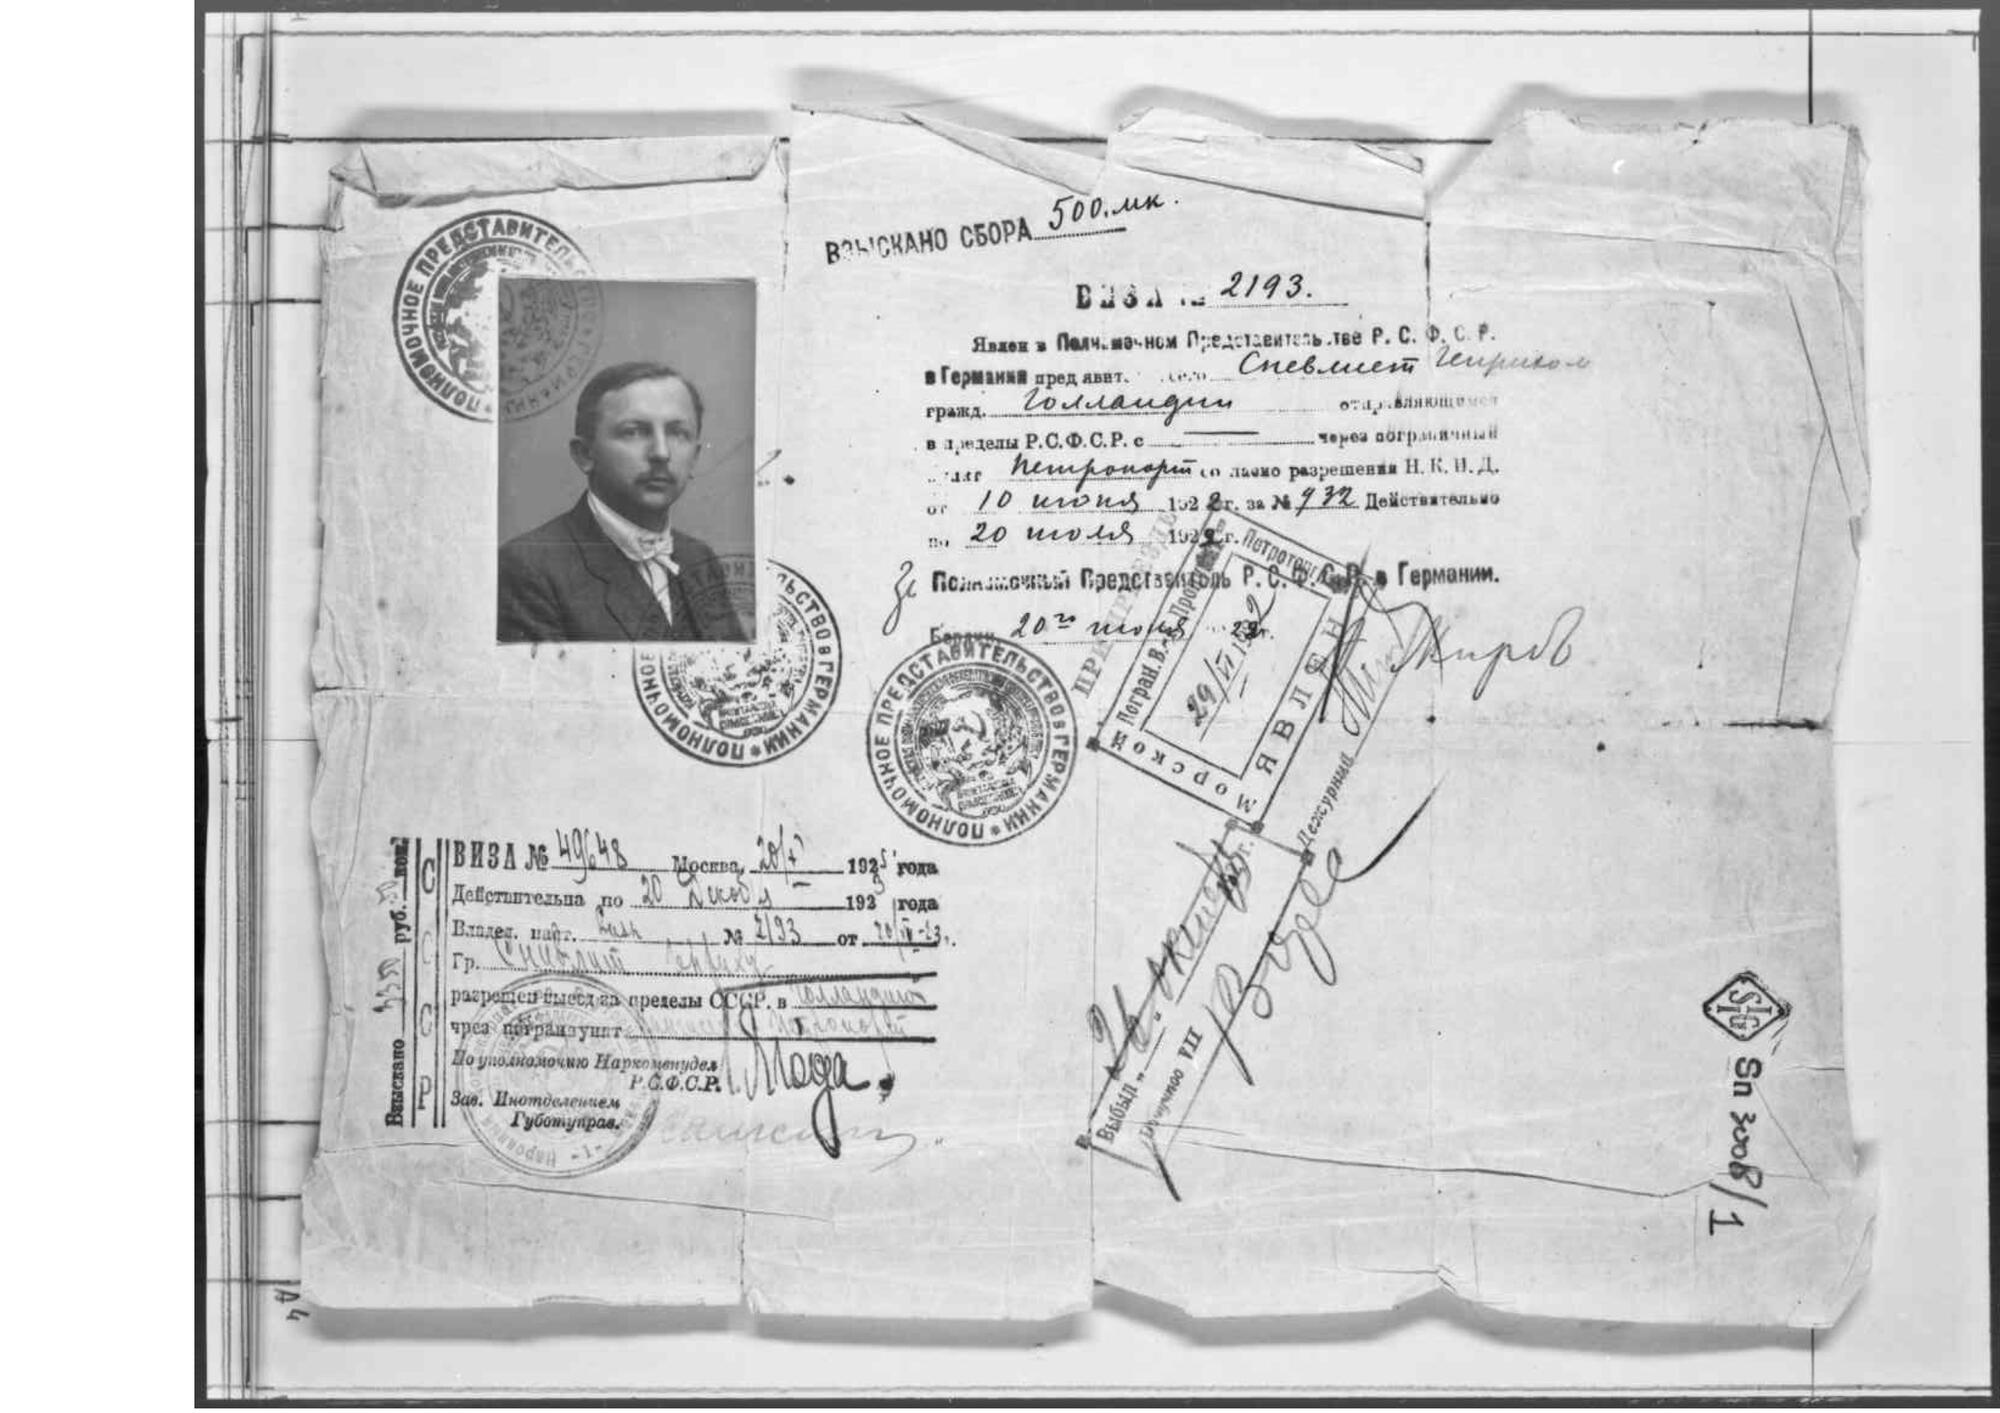 Scan of an old visa featuring a photo in the upper-left corner